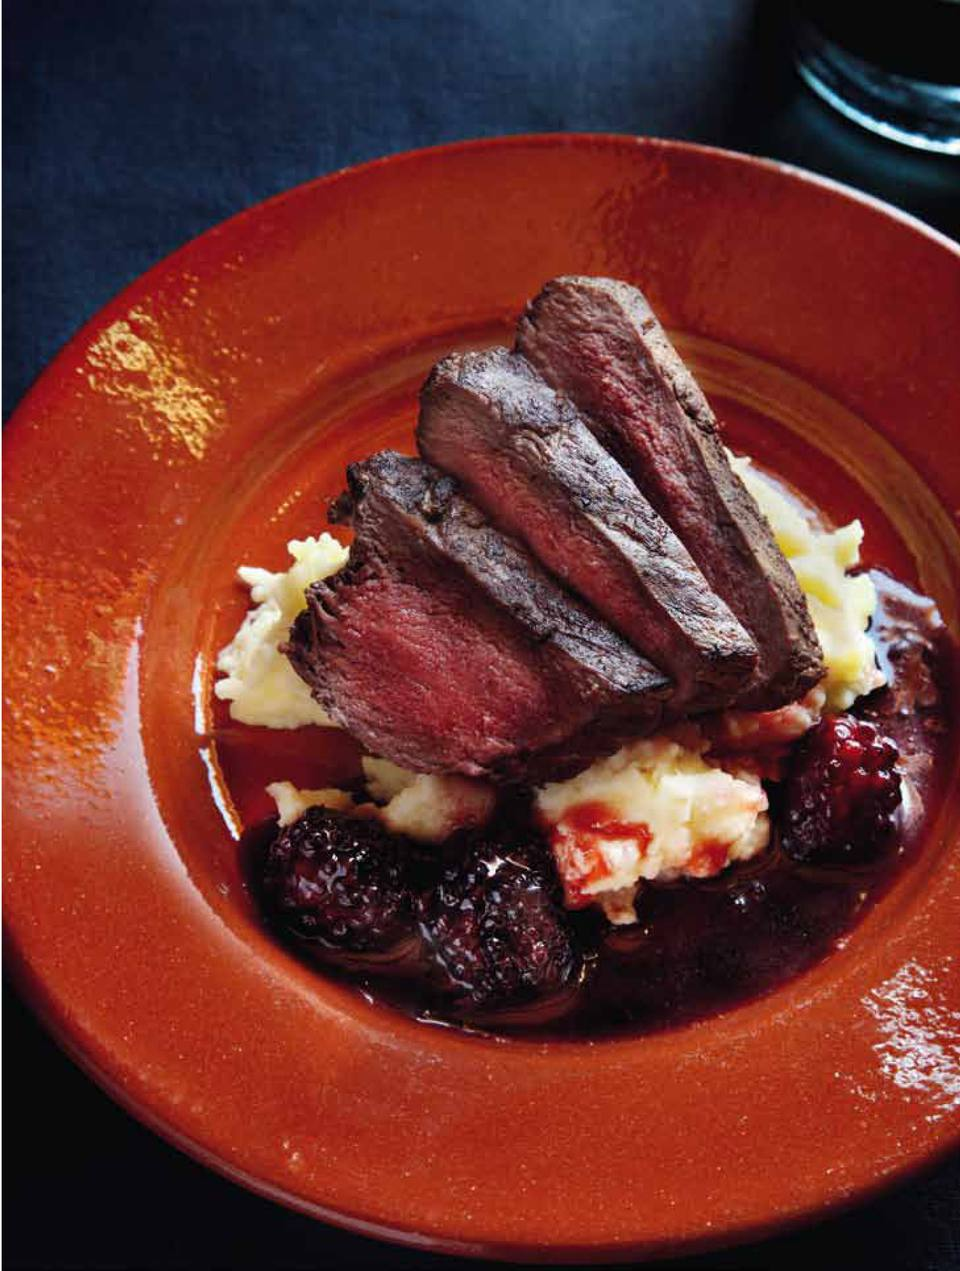 Ostrich Fillet with Mashed Potatoes and Blackberry Sauce